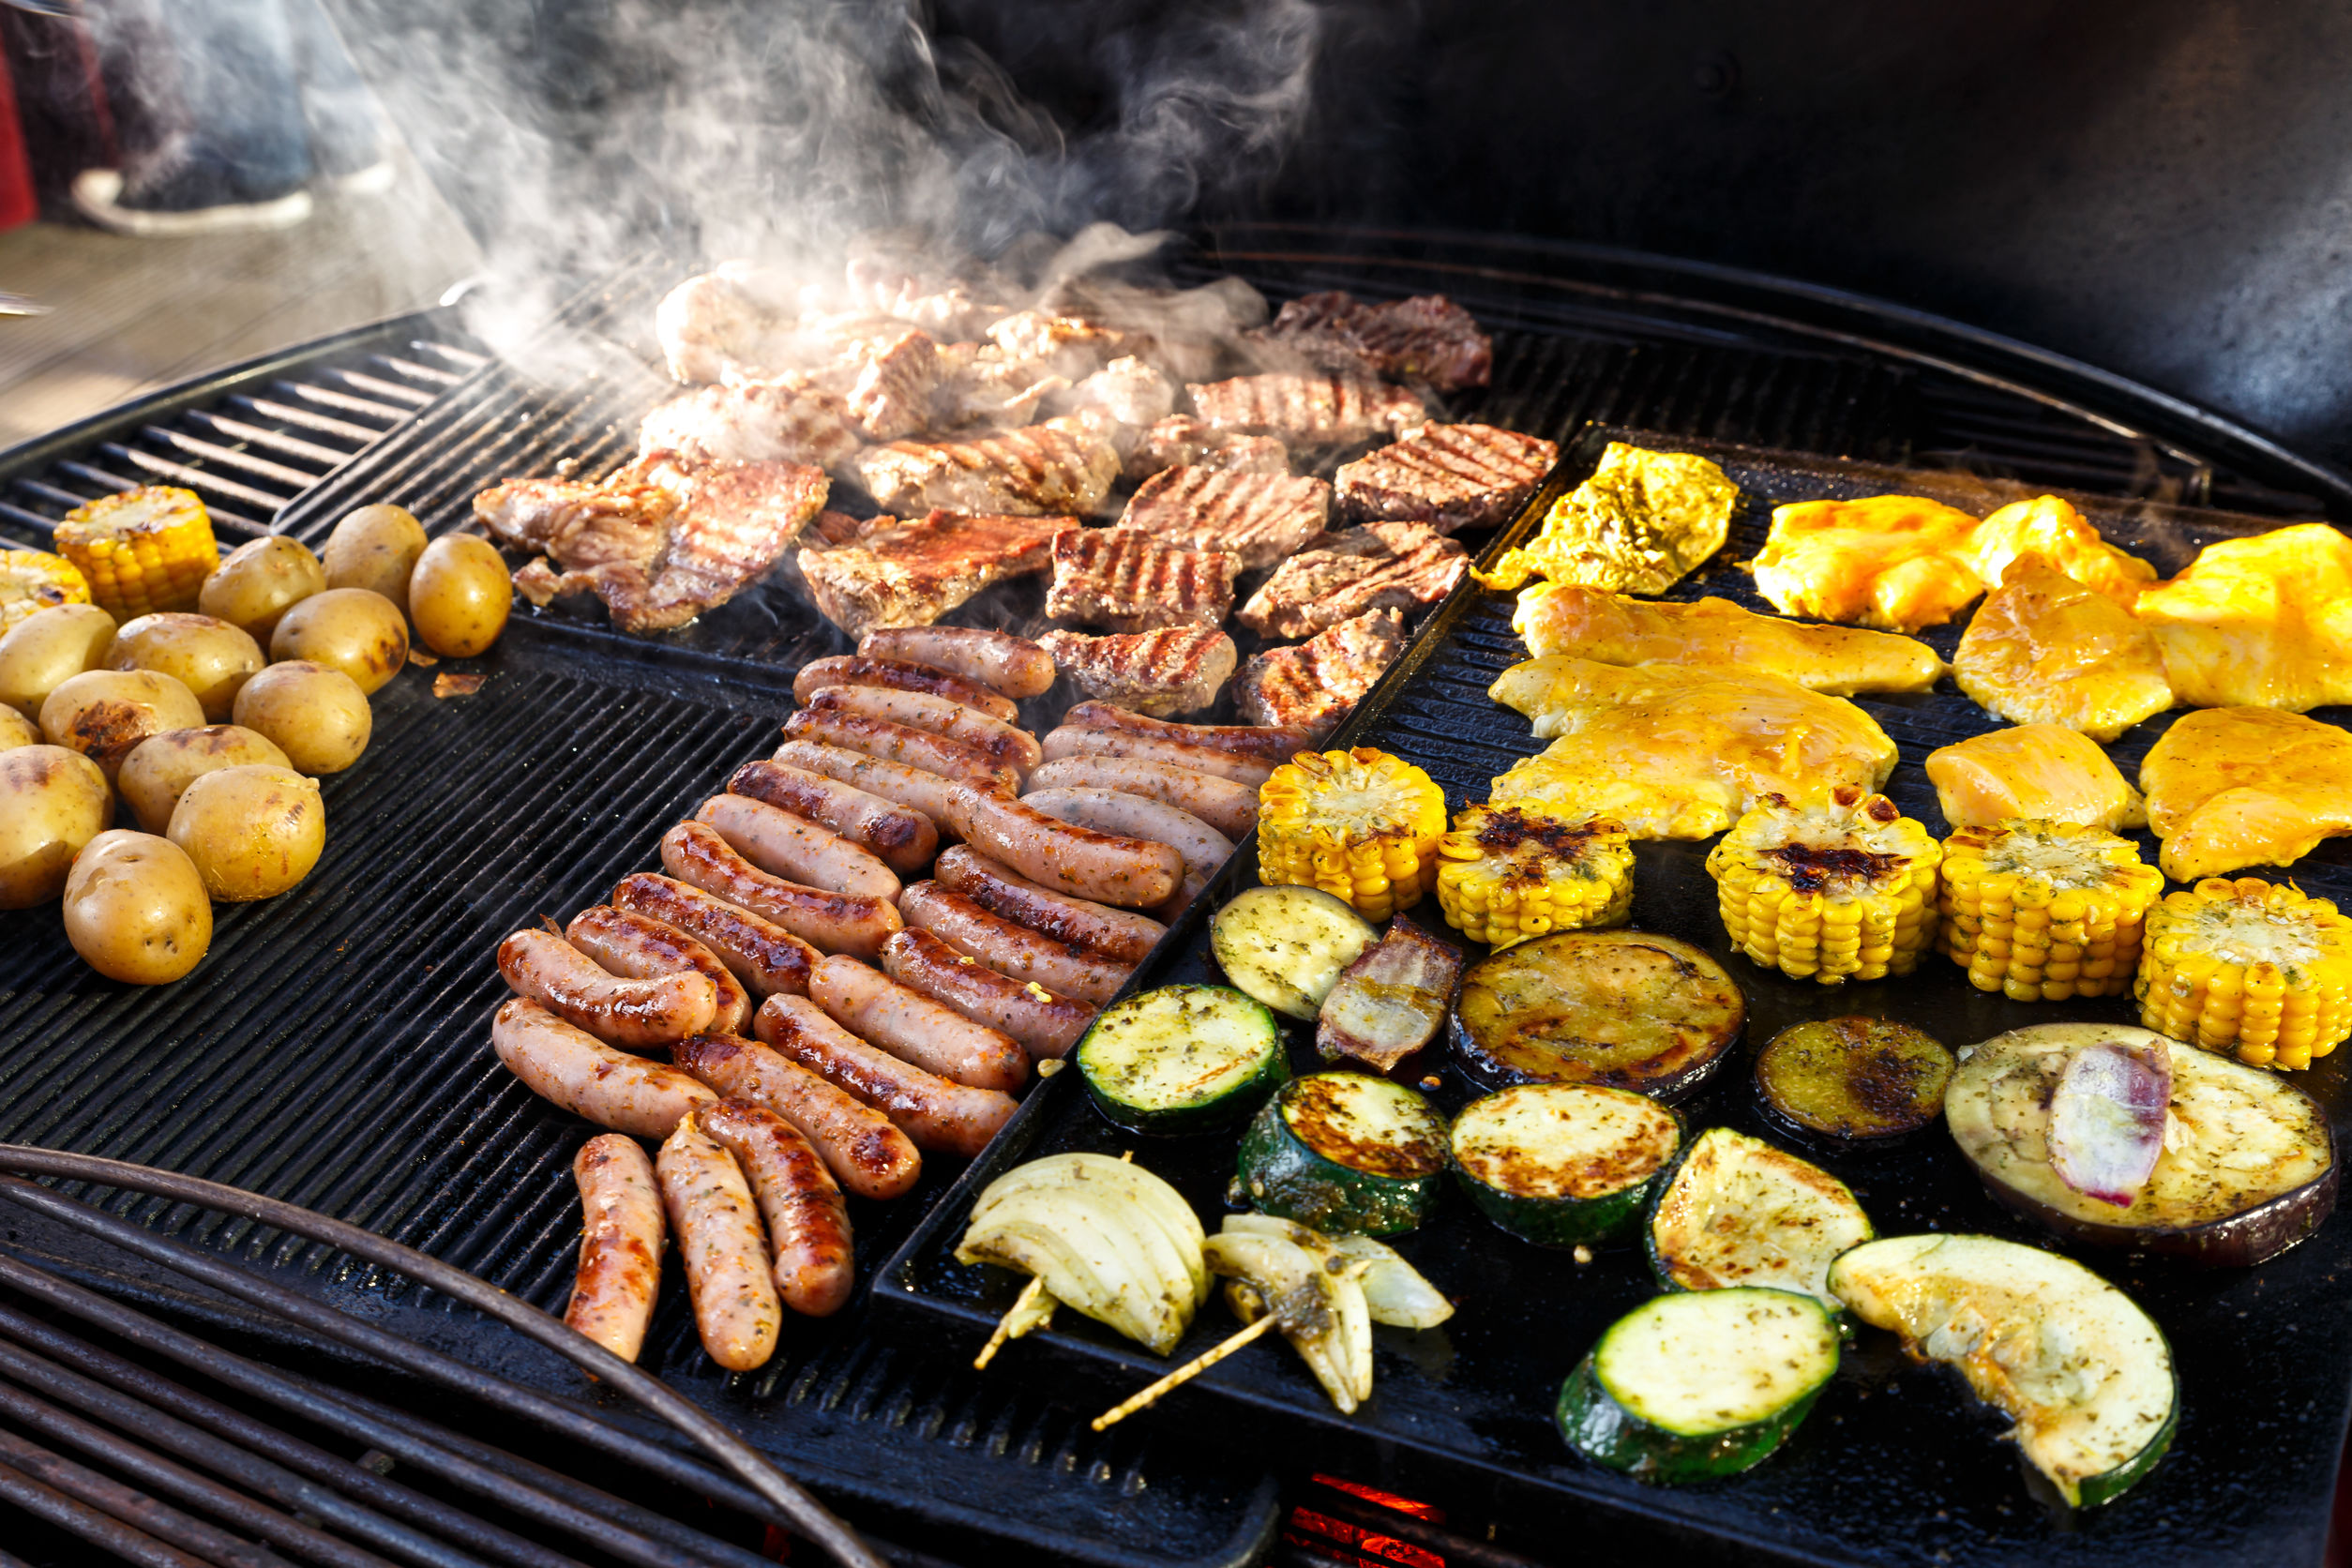 Food Hygiene Requirements For BBQs